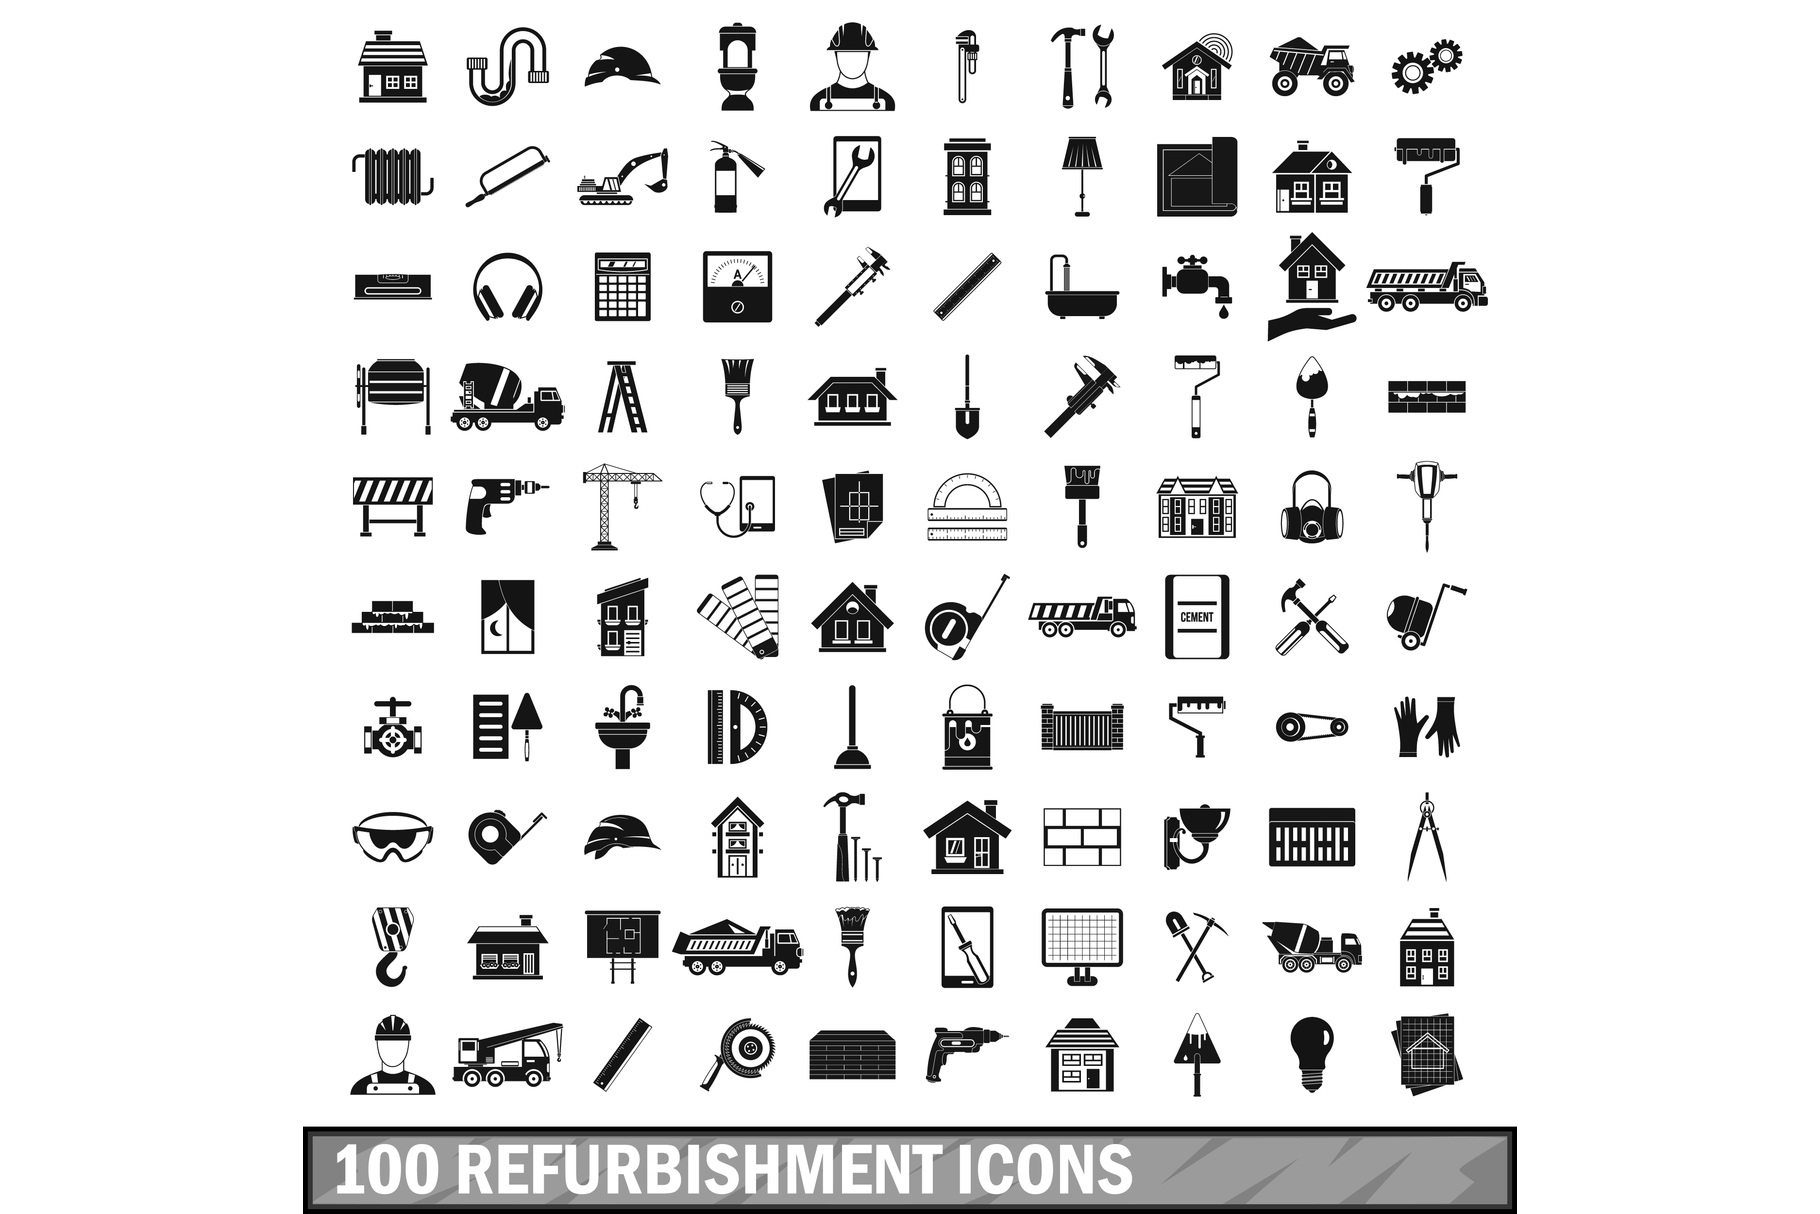 100 refurbishment icons set, simple style example image 1